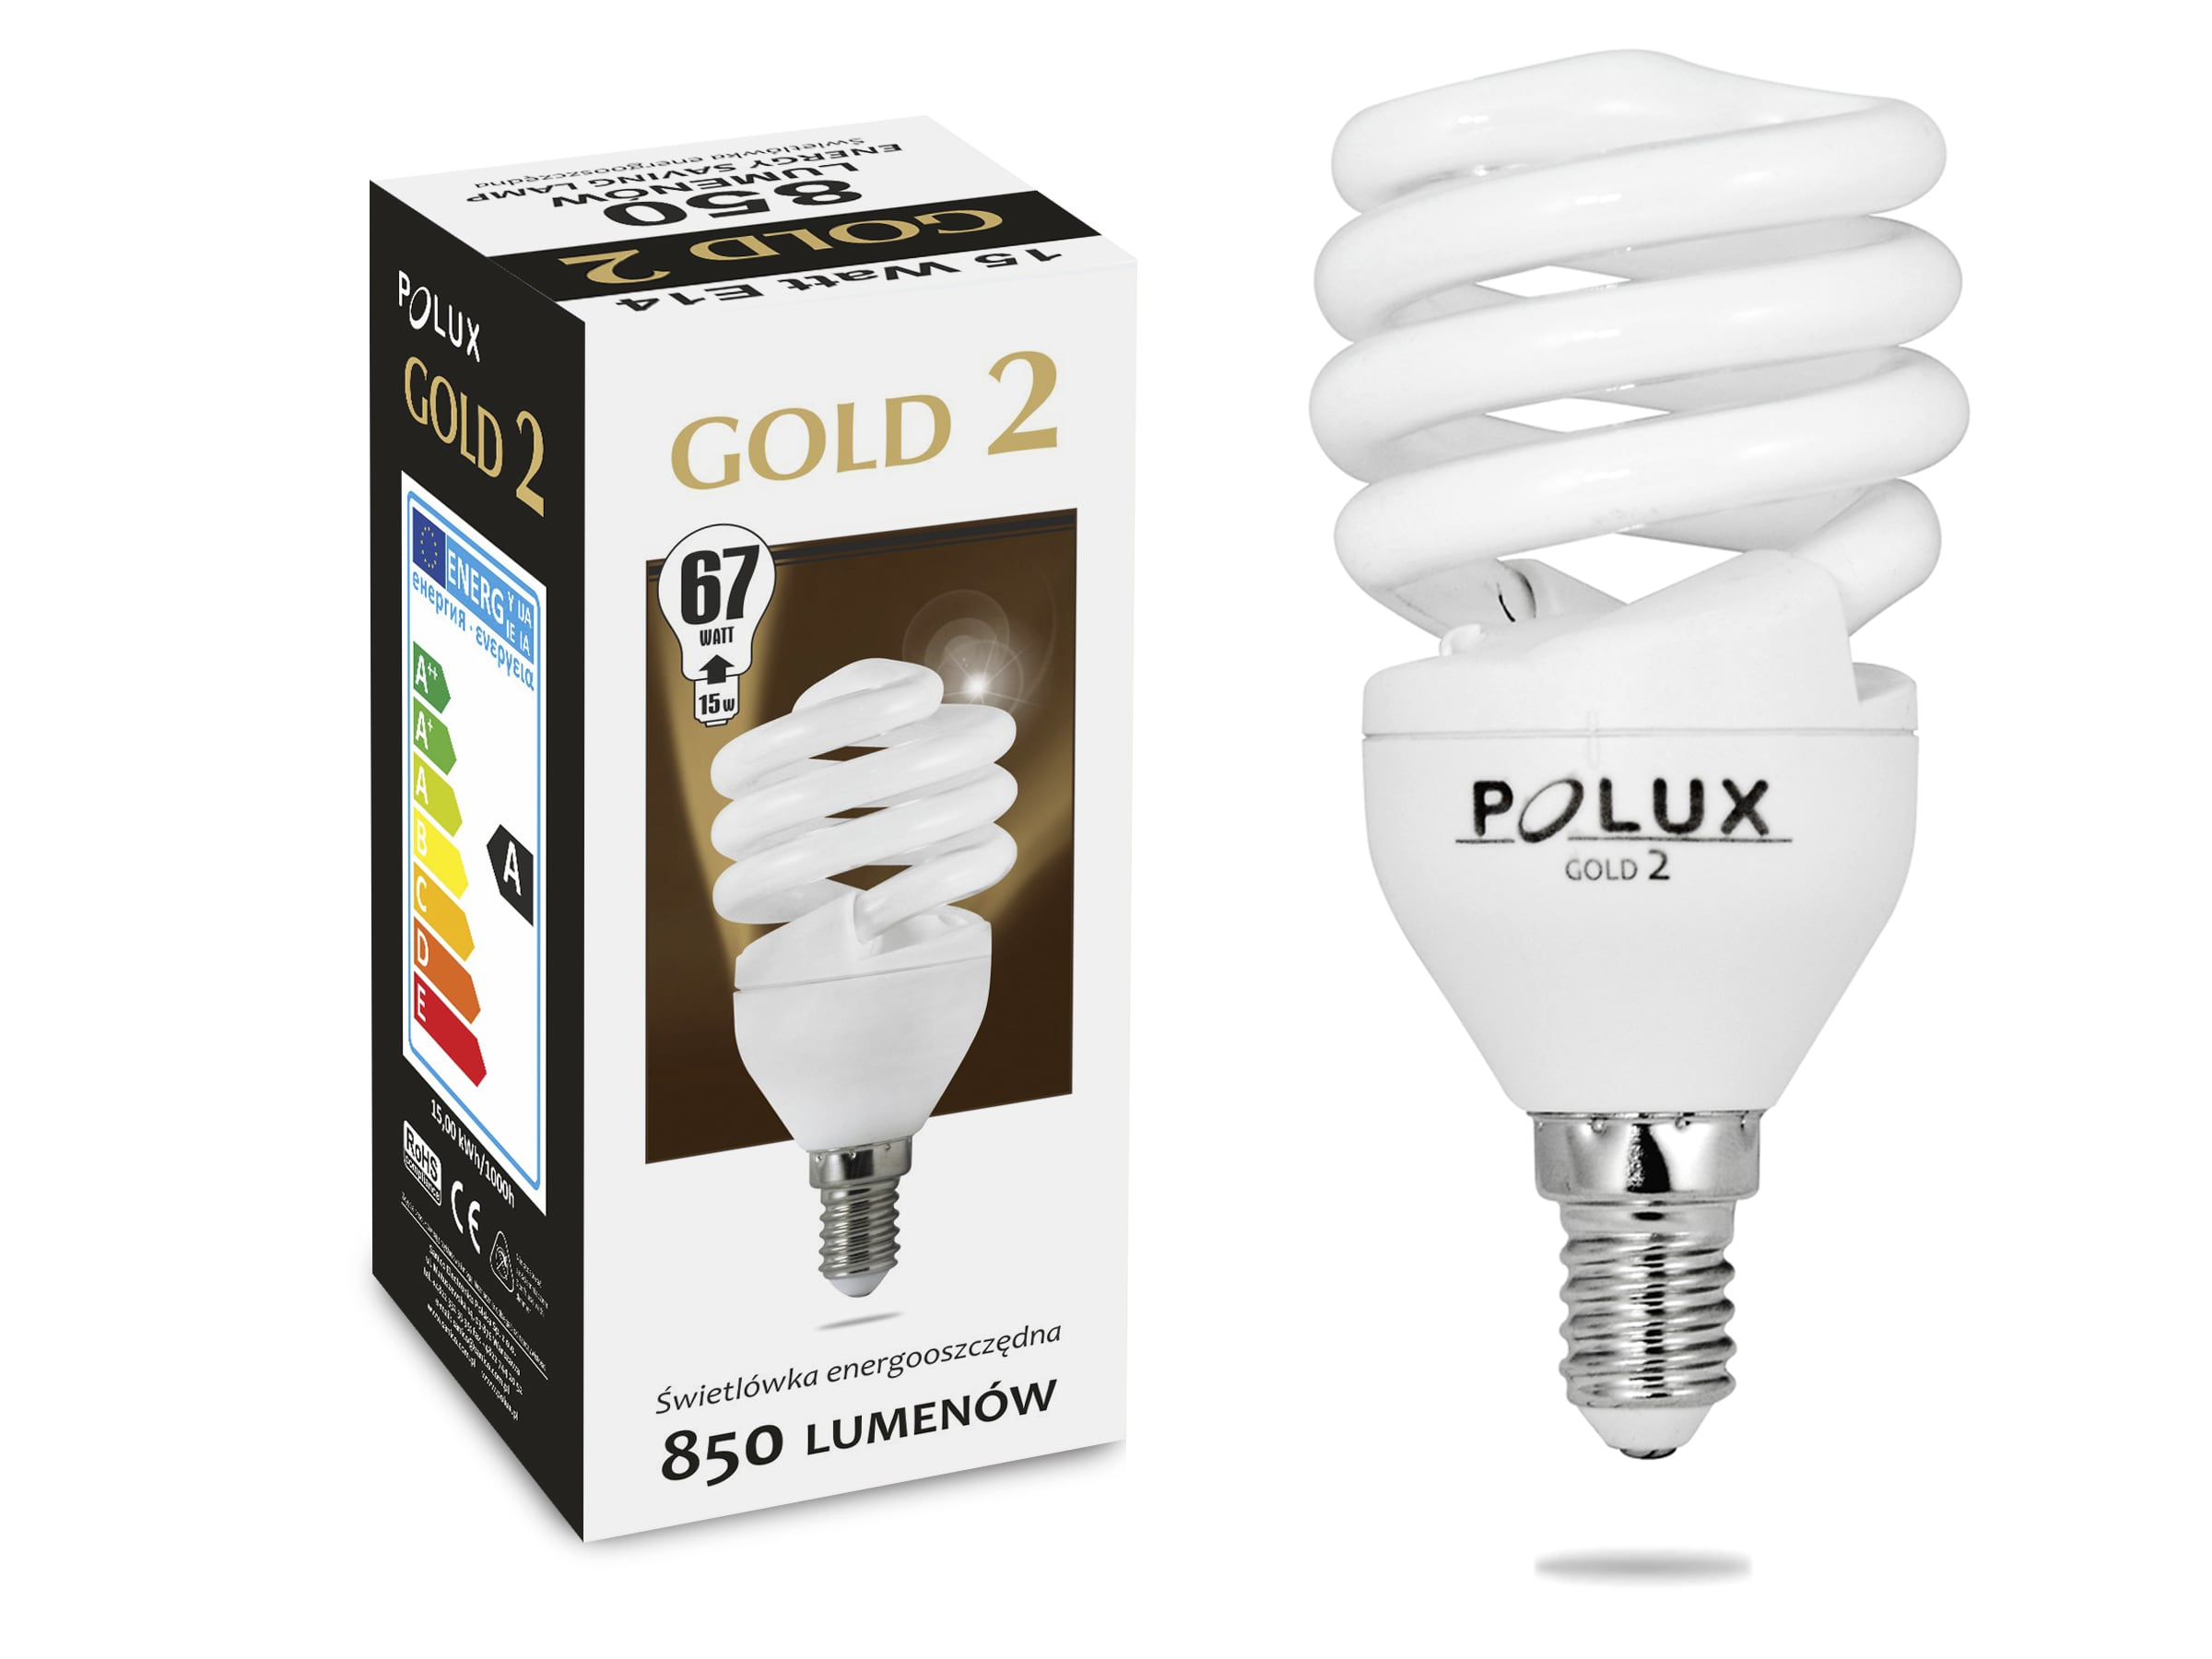 Energy saving light bulb POLUX GOLD2 mini 15W 850lm E14 2700K